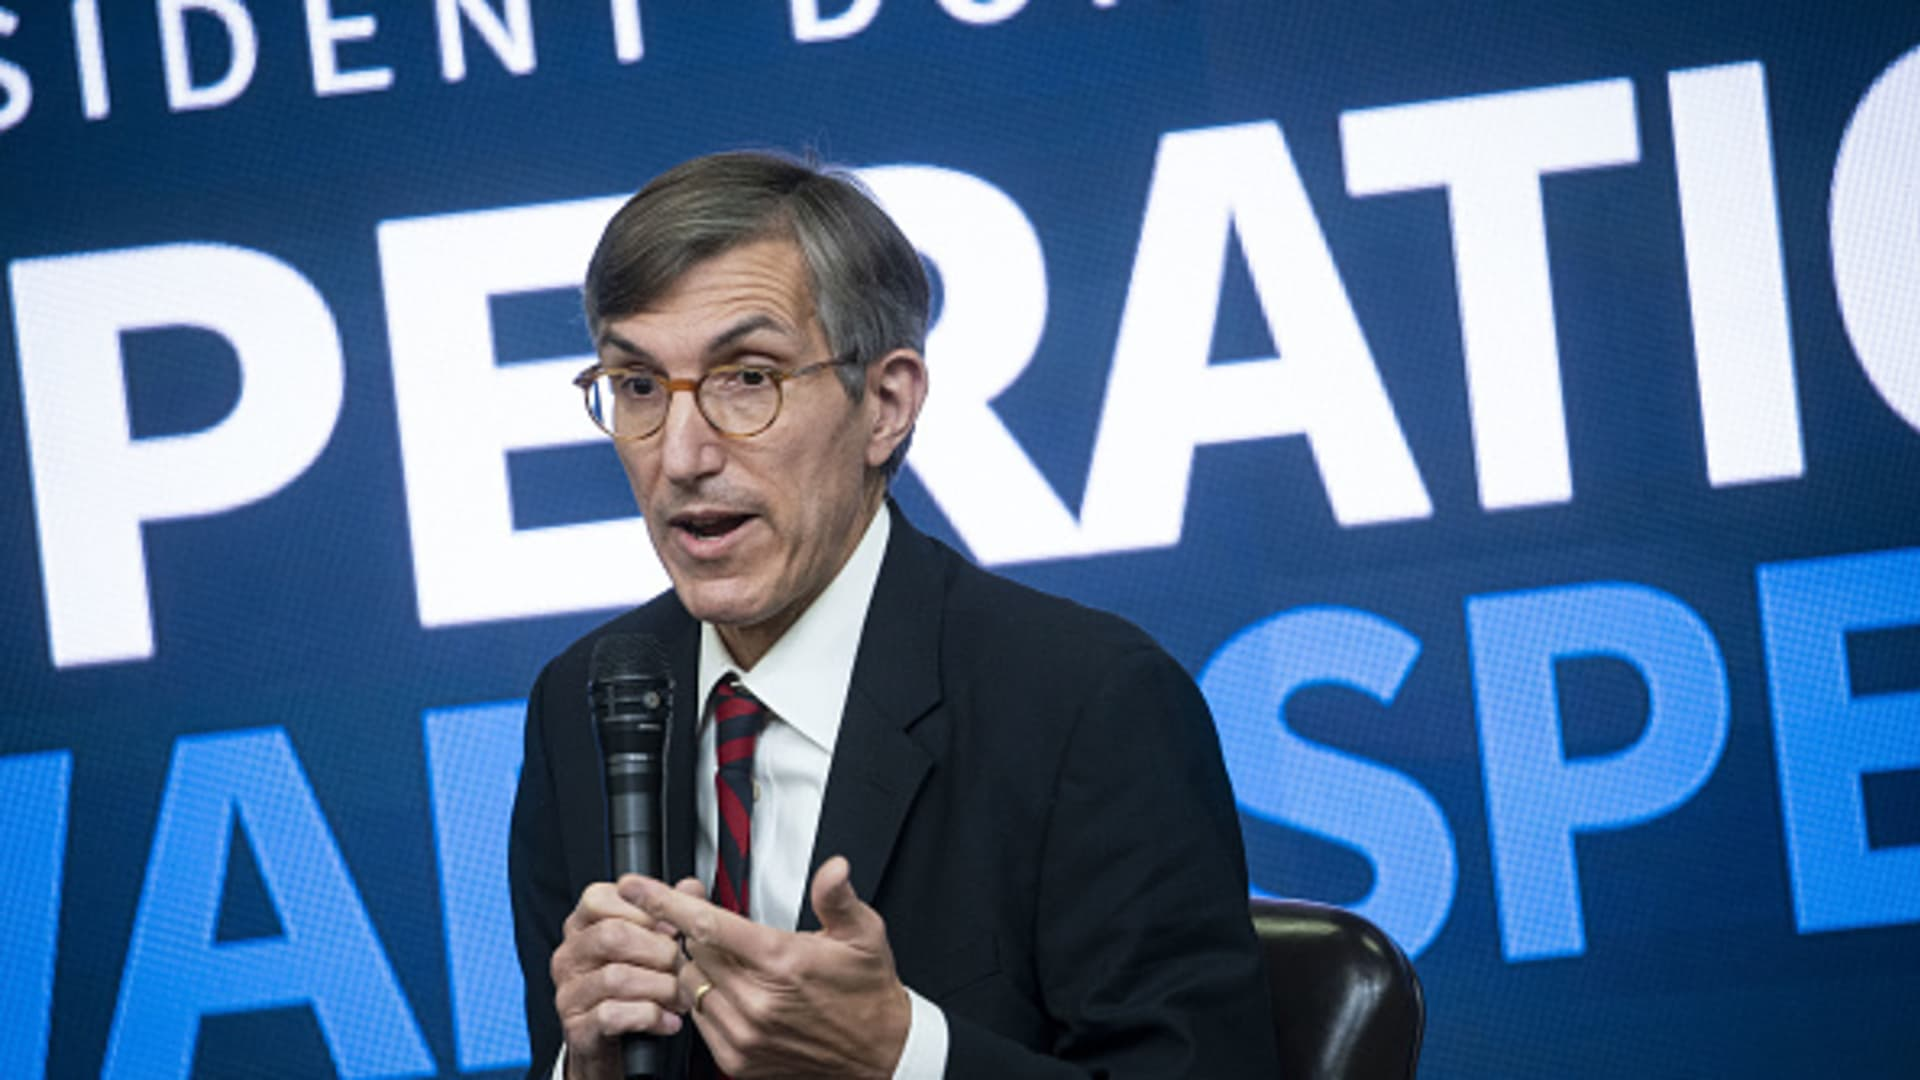 Dr. Peter Marks, director of the Center for Biologics Evaluation and Research (CBER) at the U.S. Food and Drug Administration (FDA), speaks during an Operation Warp Speed vaccine summit at the White House in Washington, D.C., U.S., on Tuesday, Dec. 8, 2020.